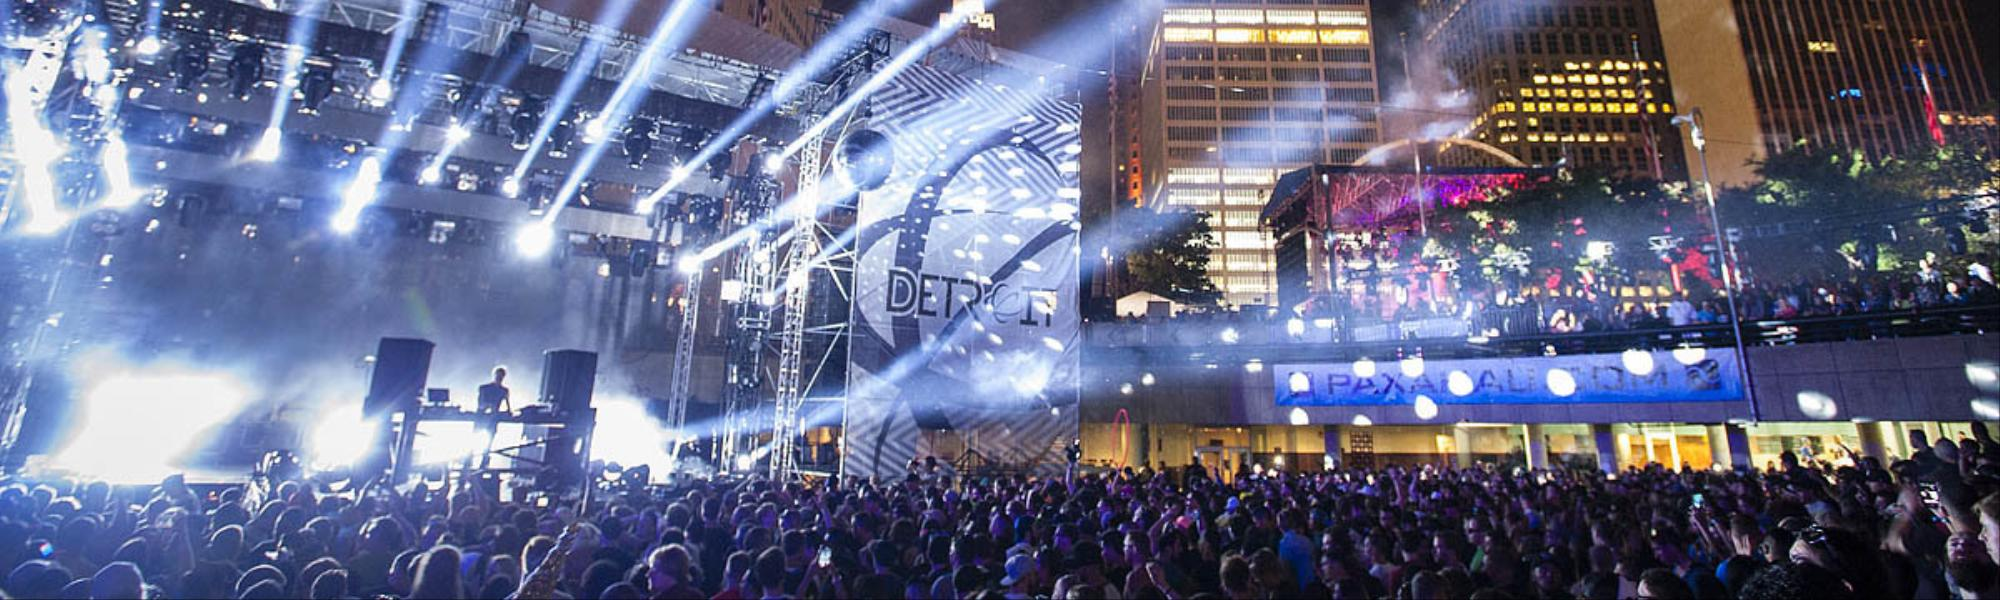 Movement Detroit 2015 Recap: The Struggles and Triumphs of Motor City's Biggest Year Ever